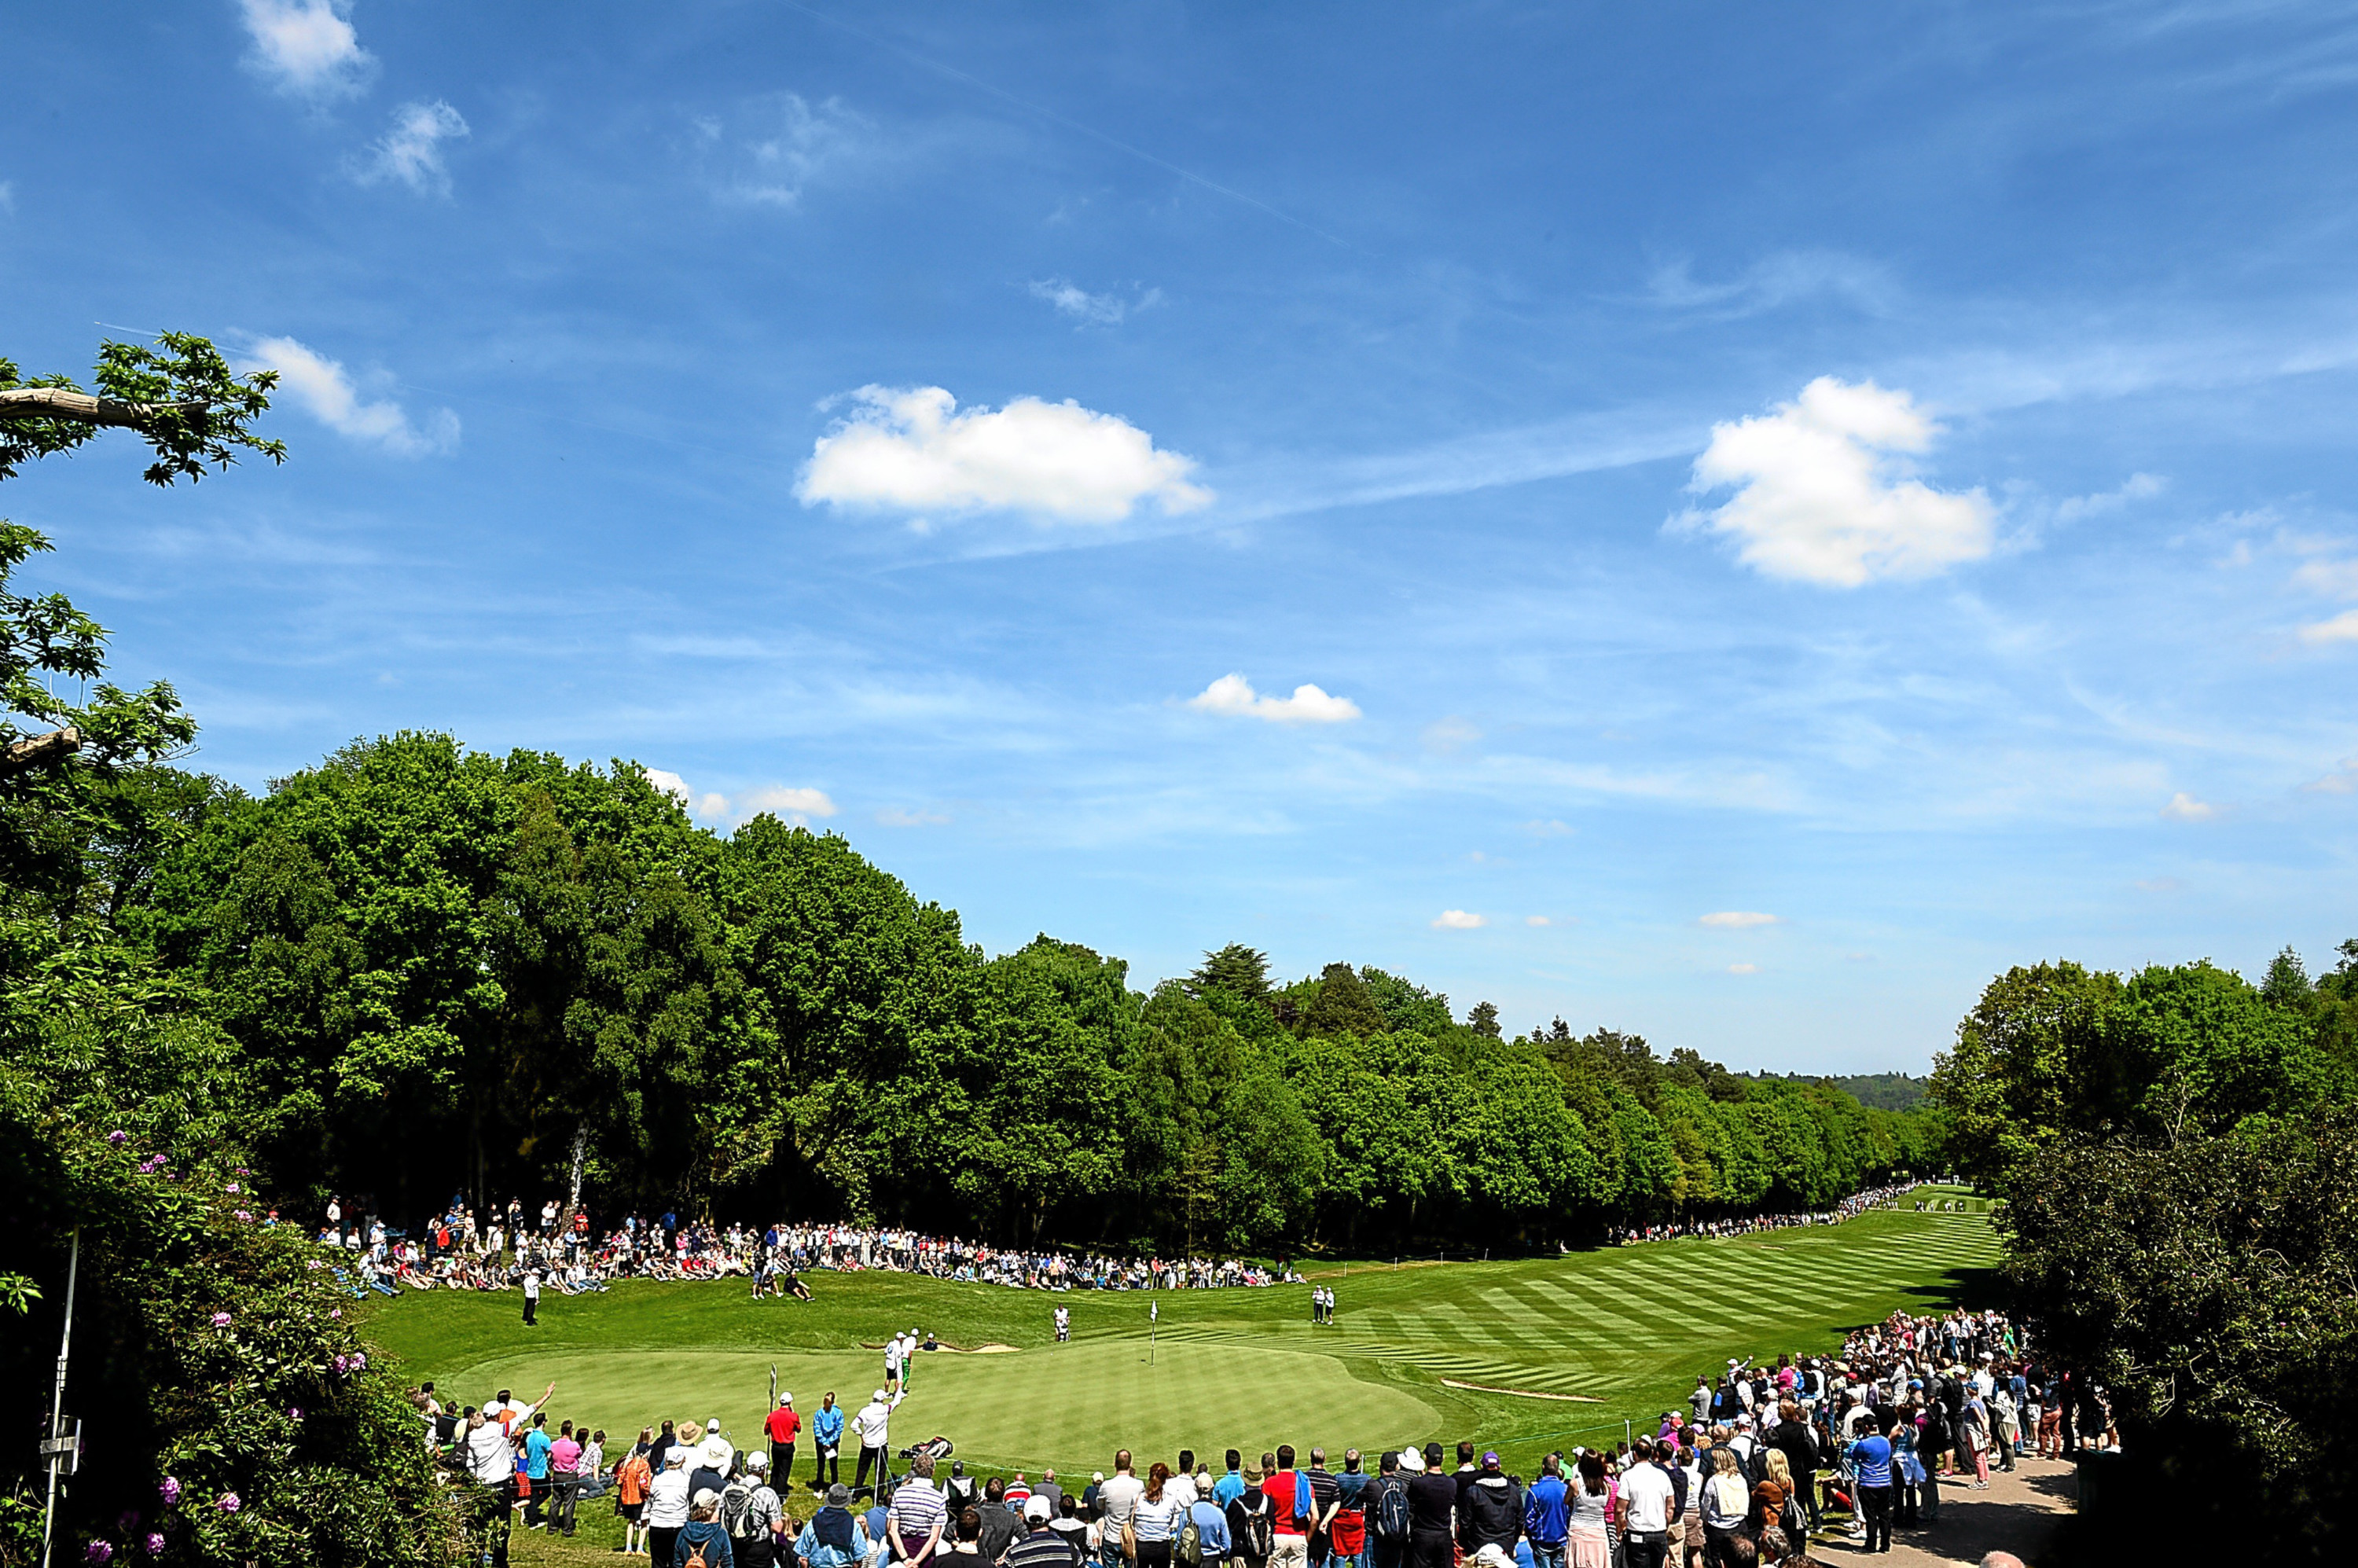 The Wentworth West course, home of BMW PGA Championship.